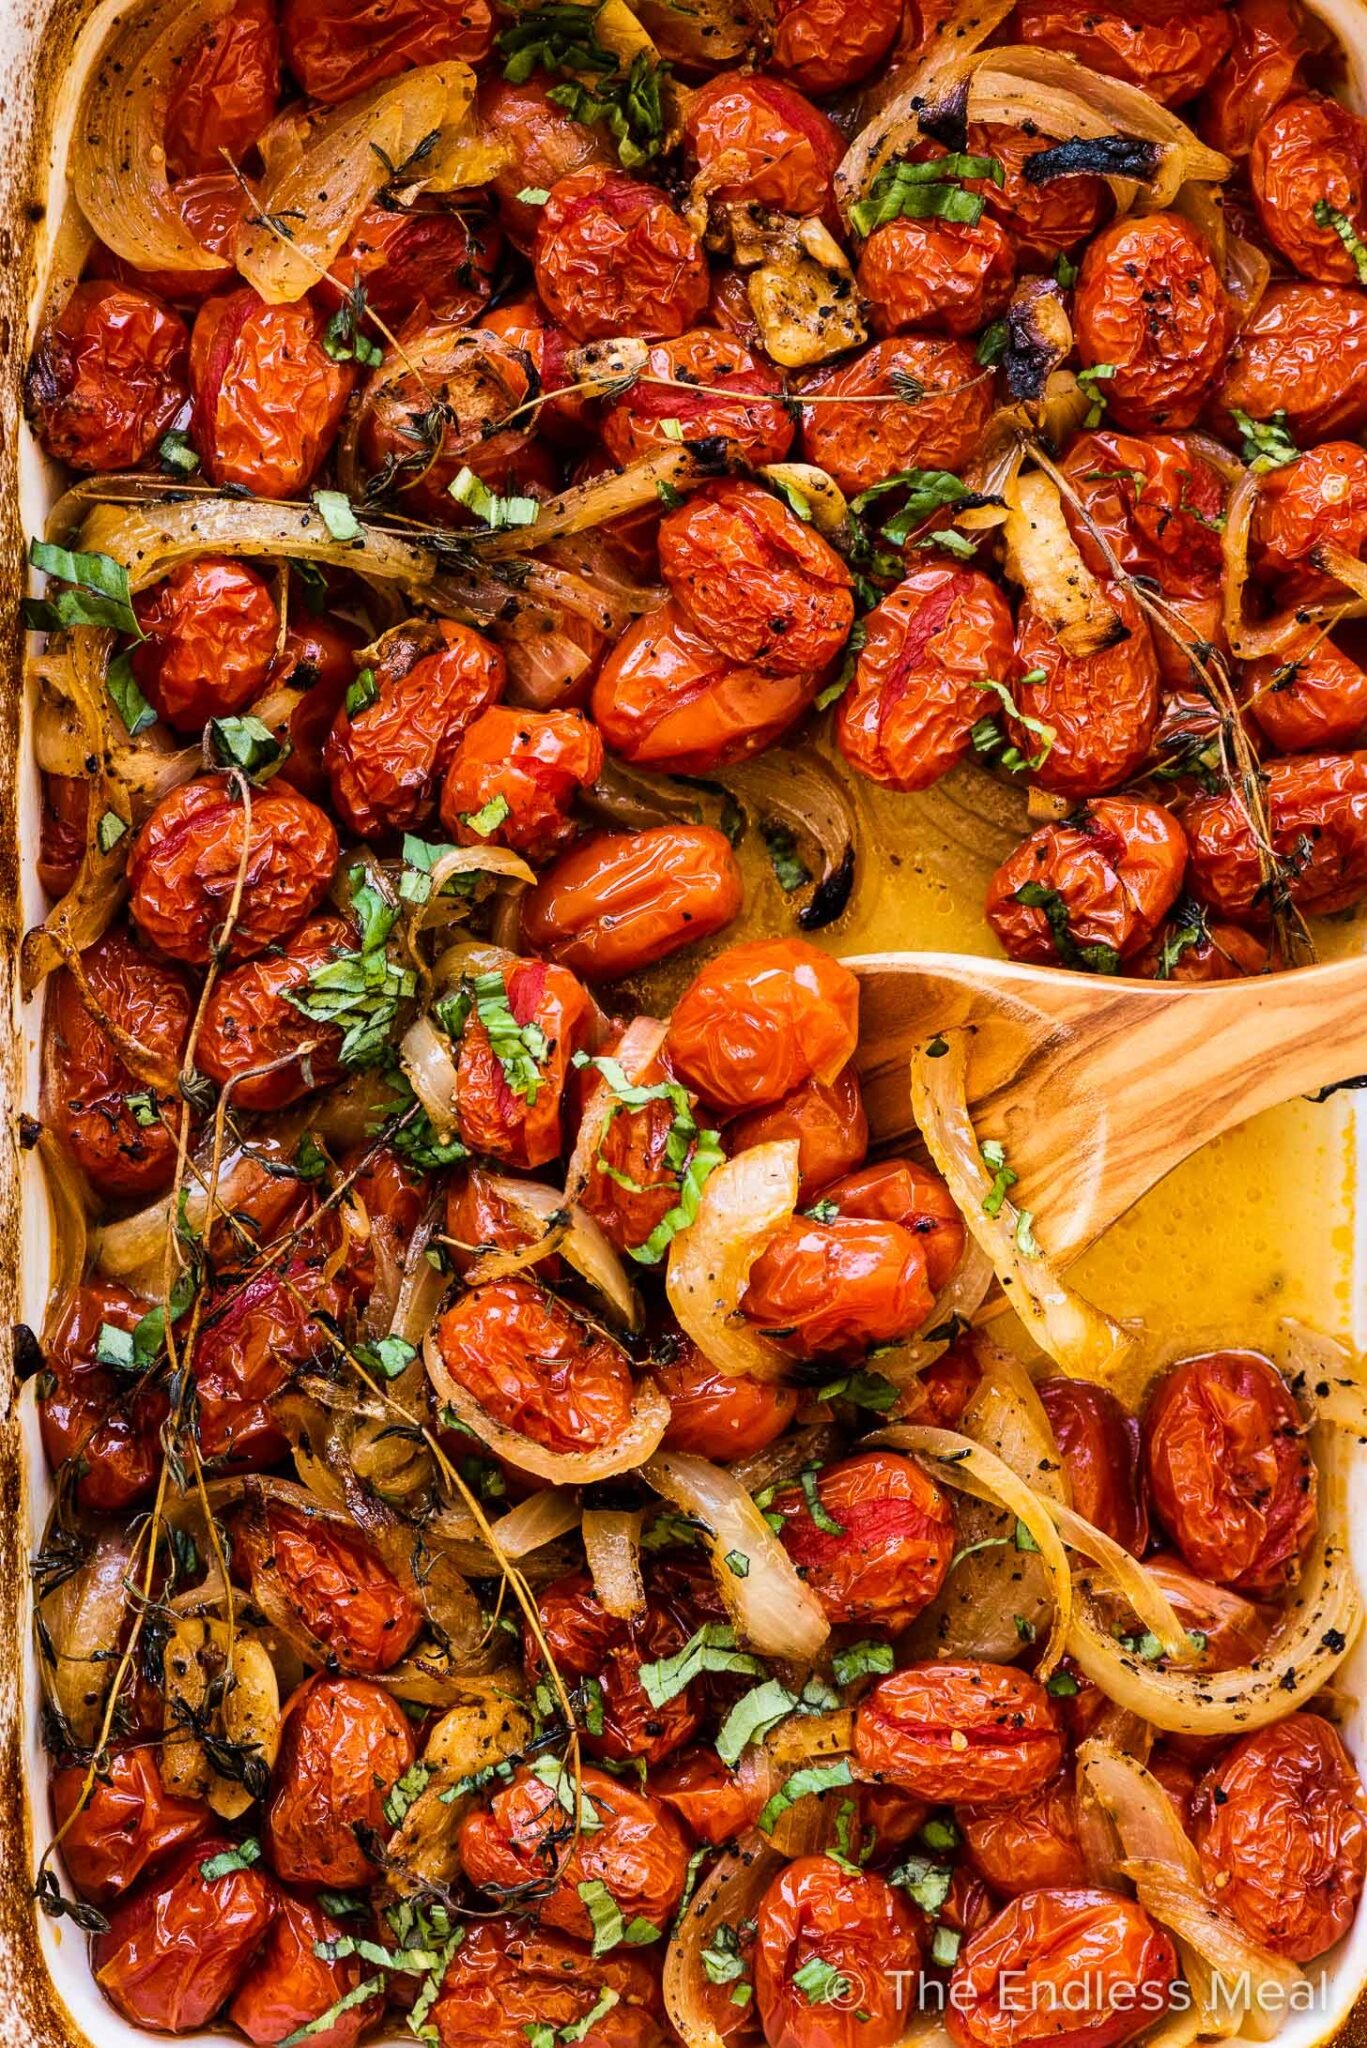 Roasted cherry tomatoes in a baking dish with a wooden spoon.